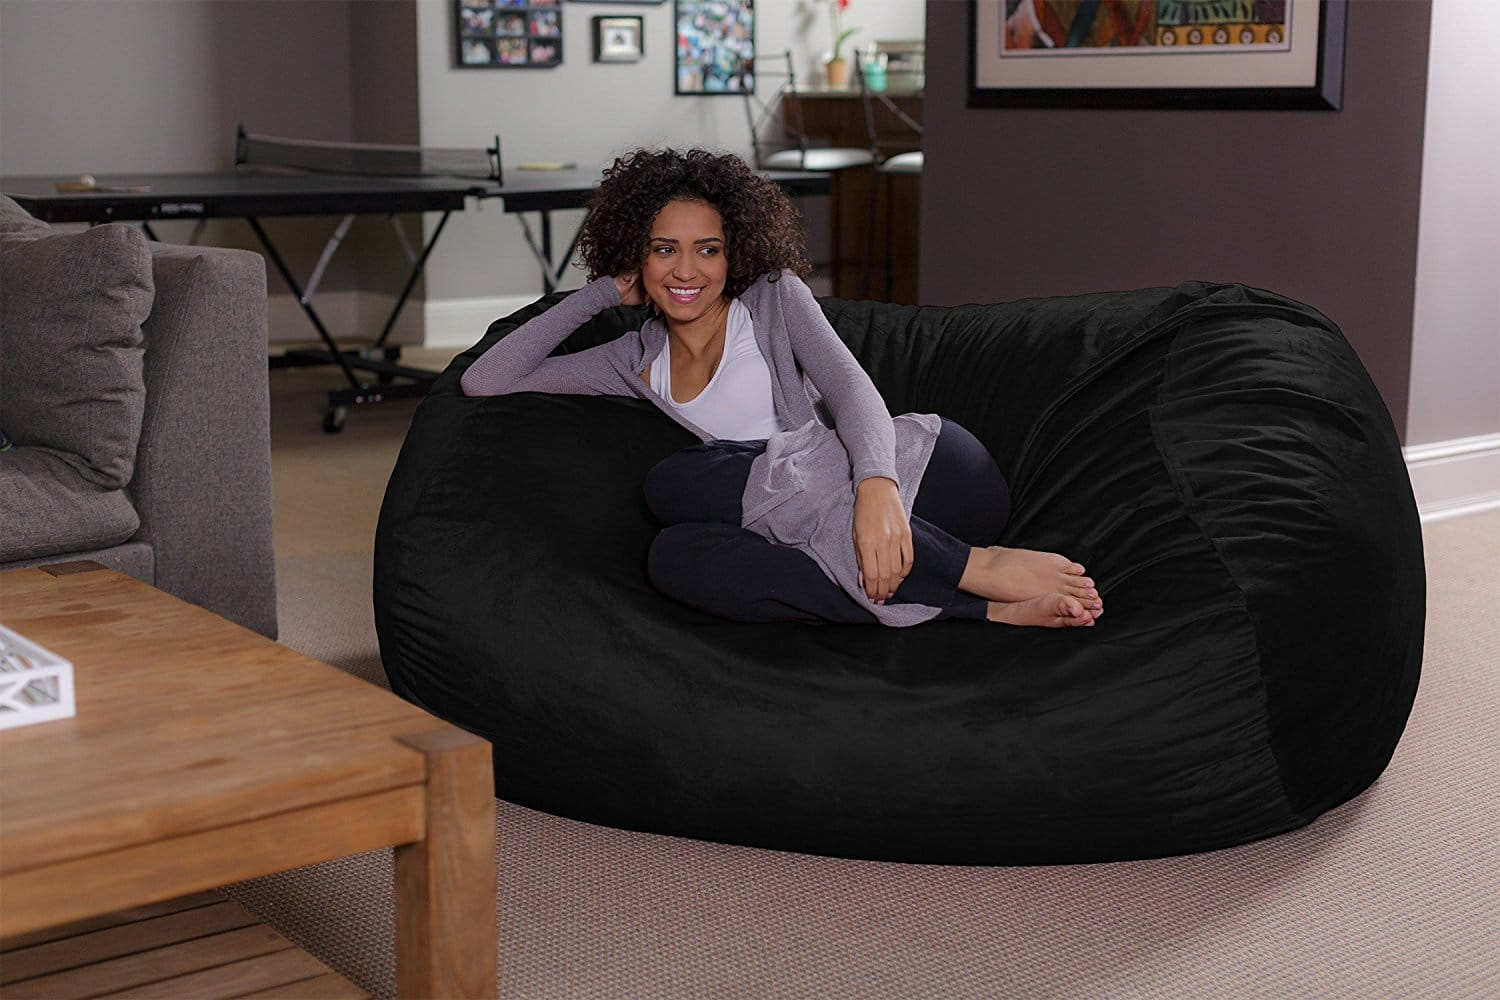 Top 10 Comfiest Bean Bags In The US 2016